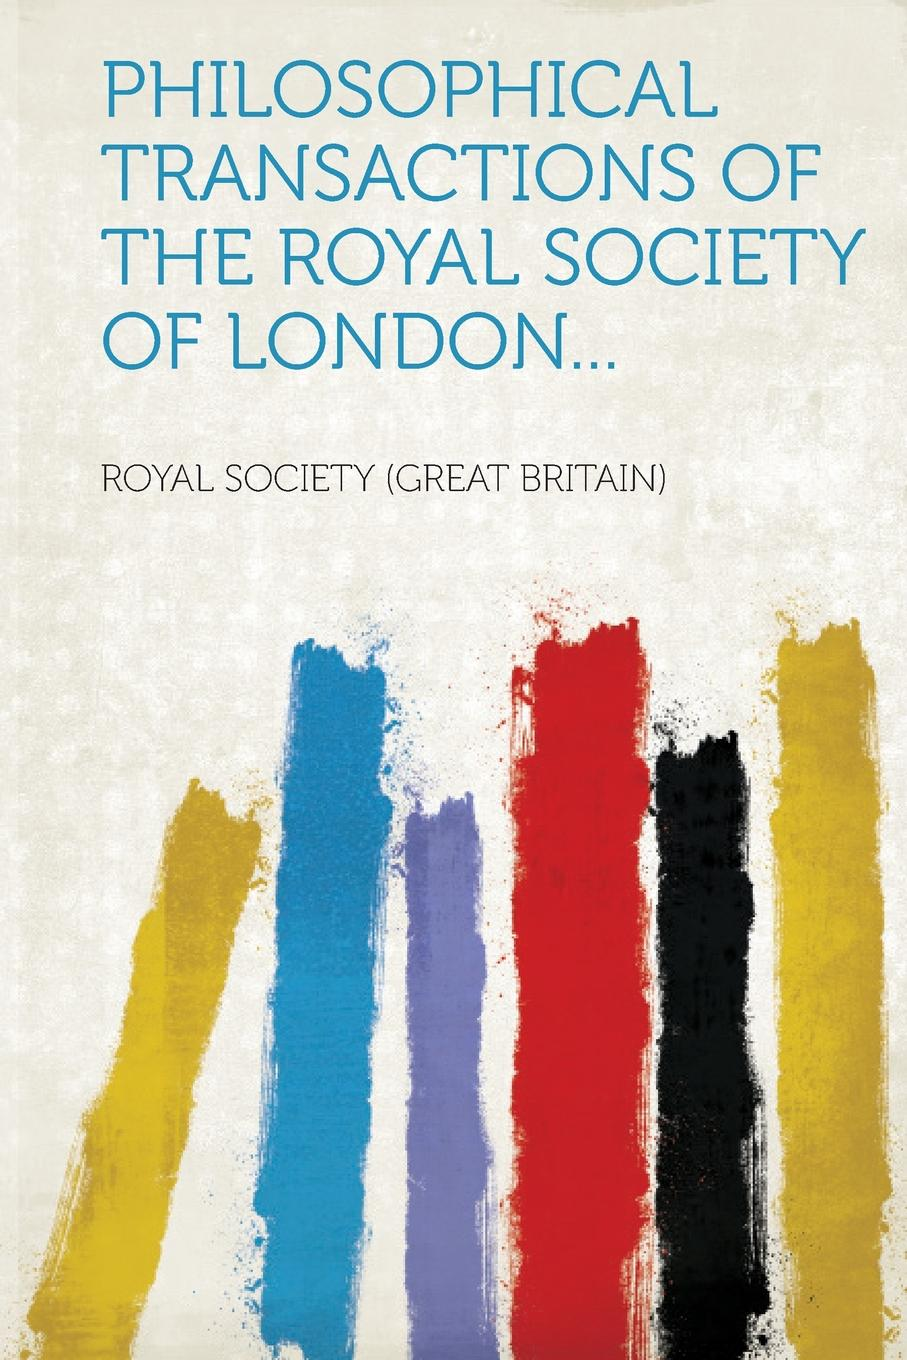 Royal Society (Great Britain) Philosophical Transactions of the Royal Society of London...